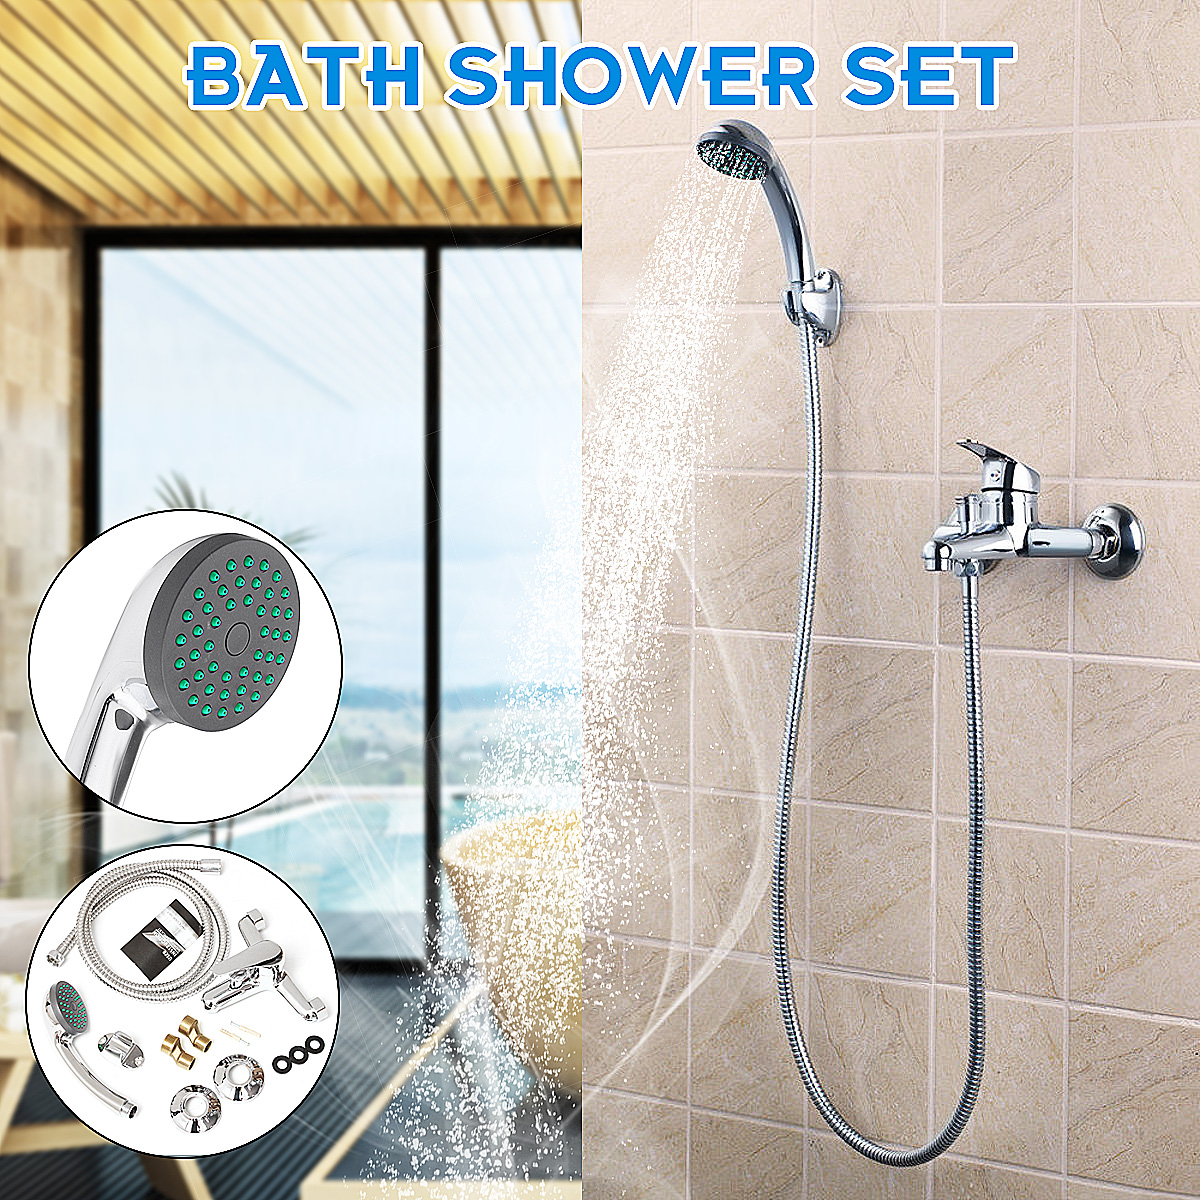 Chrome Bathroom Handheld Shower Head Spray Shower Faucet Set Wall